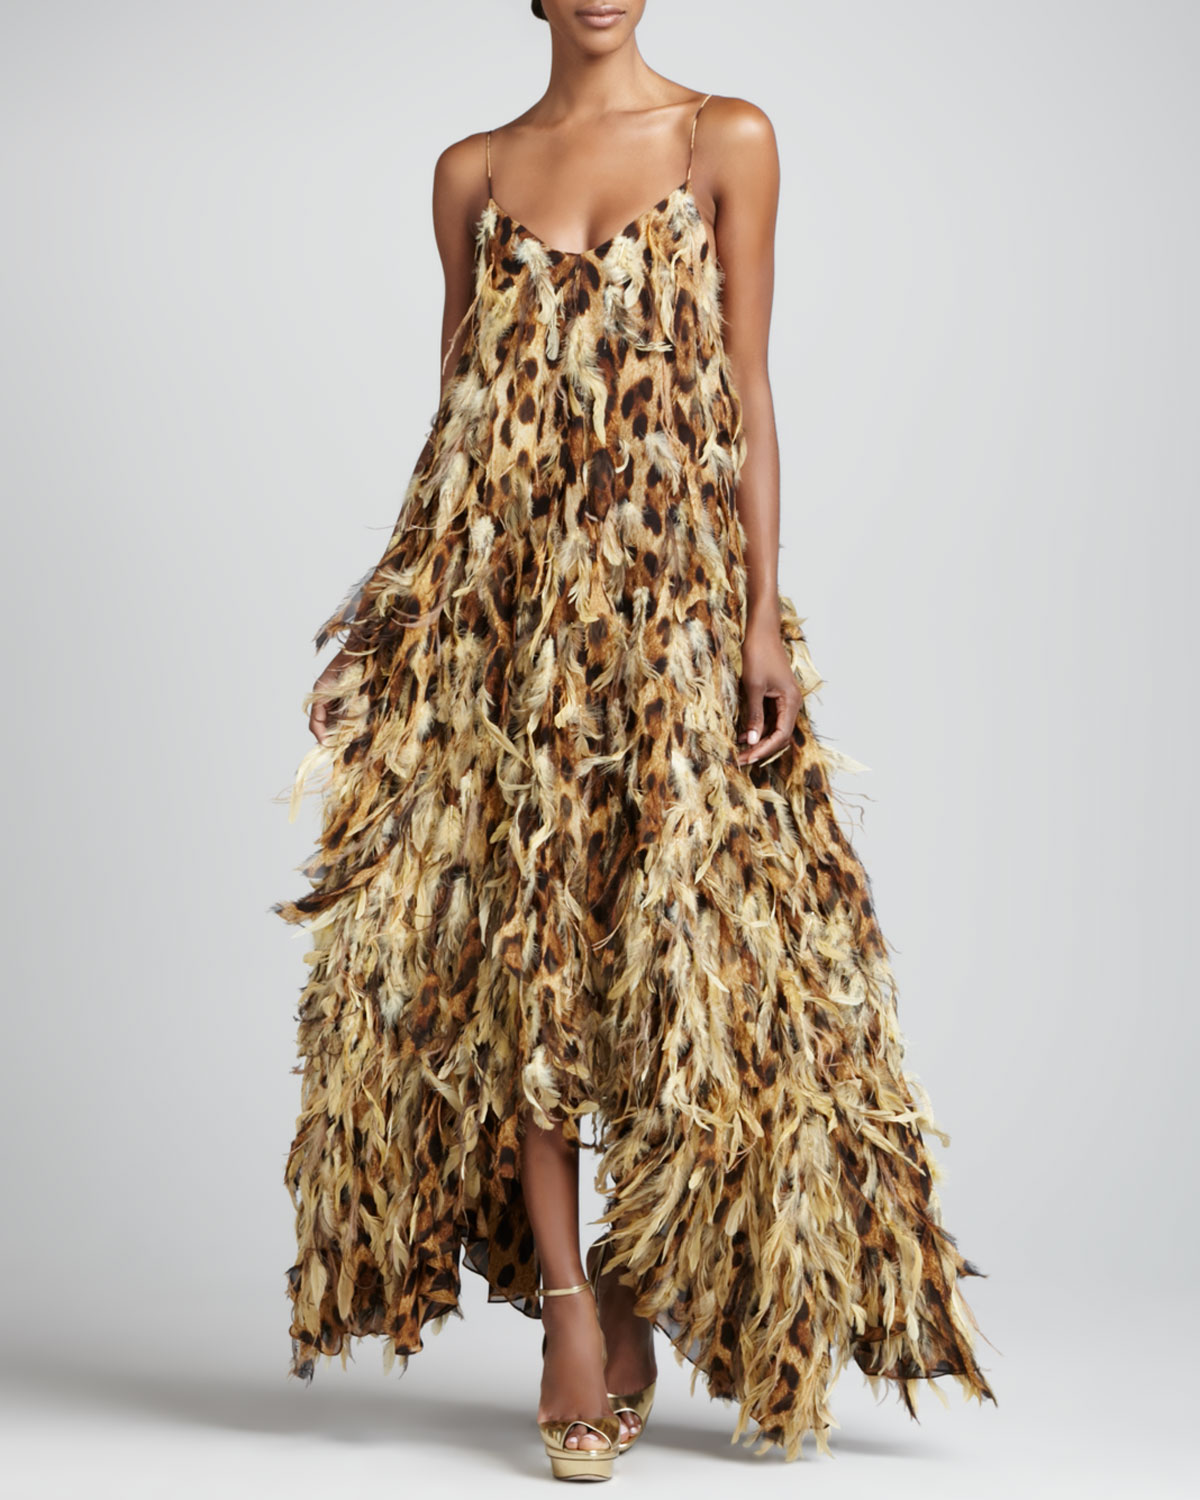 Leopard Print Chiffon Feathered Gown   Michael Kors